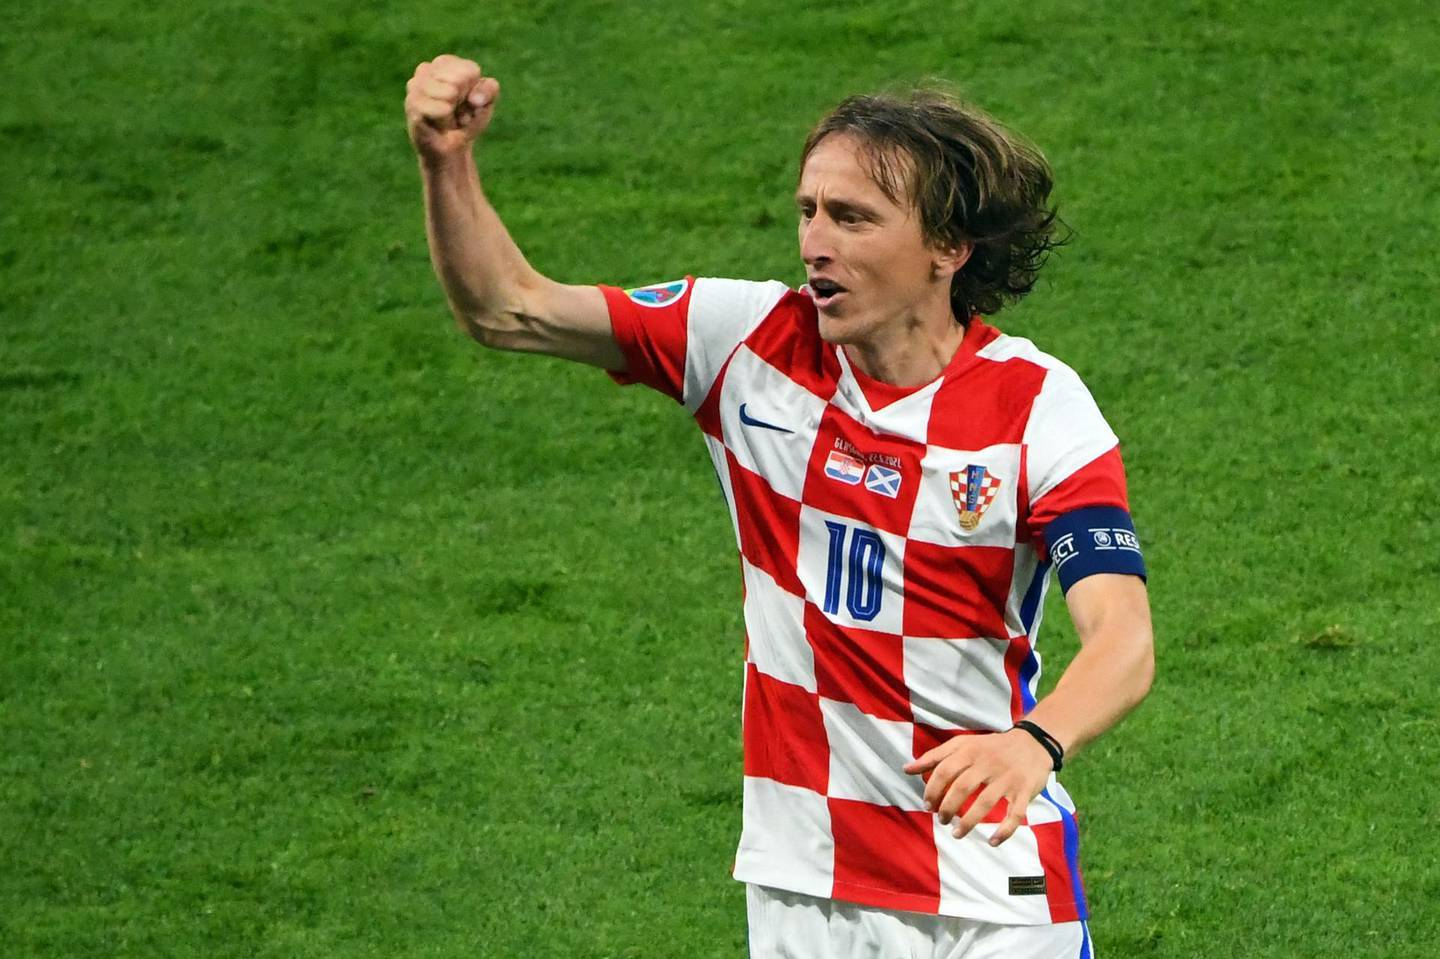 Croatia's midfielder Luka Modric celebrates with the fans after their win in the UEFA EURO 2020 Group D football match between Croatia and Scotland at Hampden Park in Glasgow on June 22, 2021. / AFP / POOL / ANDY BUCHANAN